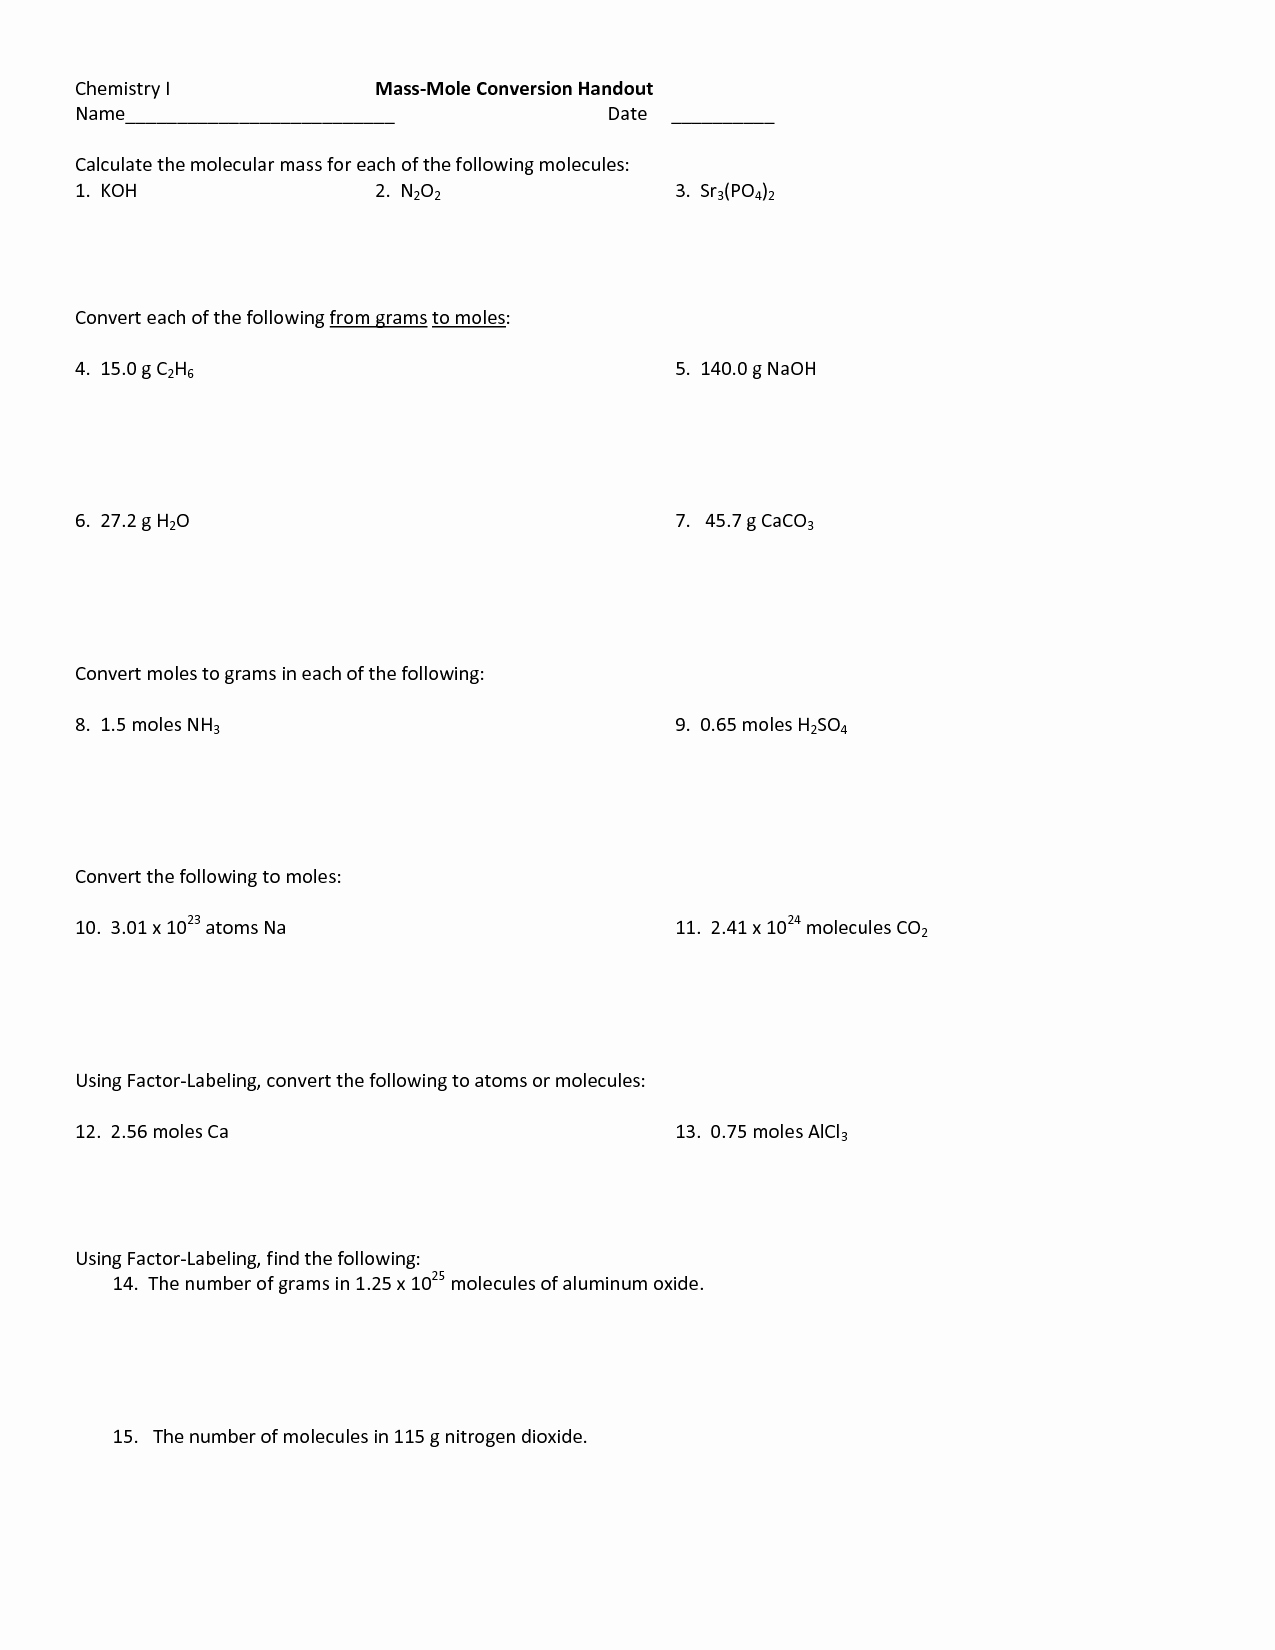 Molar Conversion Worksheet Answers Lovely 10 Best Of Moles and Mass Worksheet Answers Moles